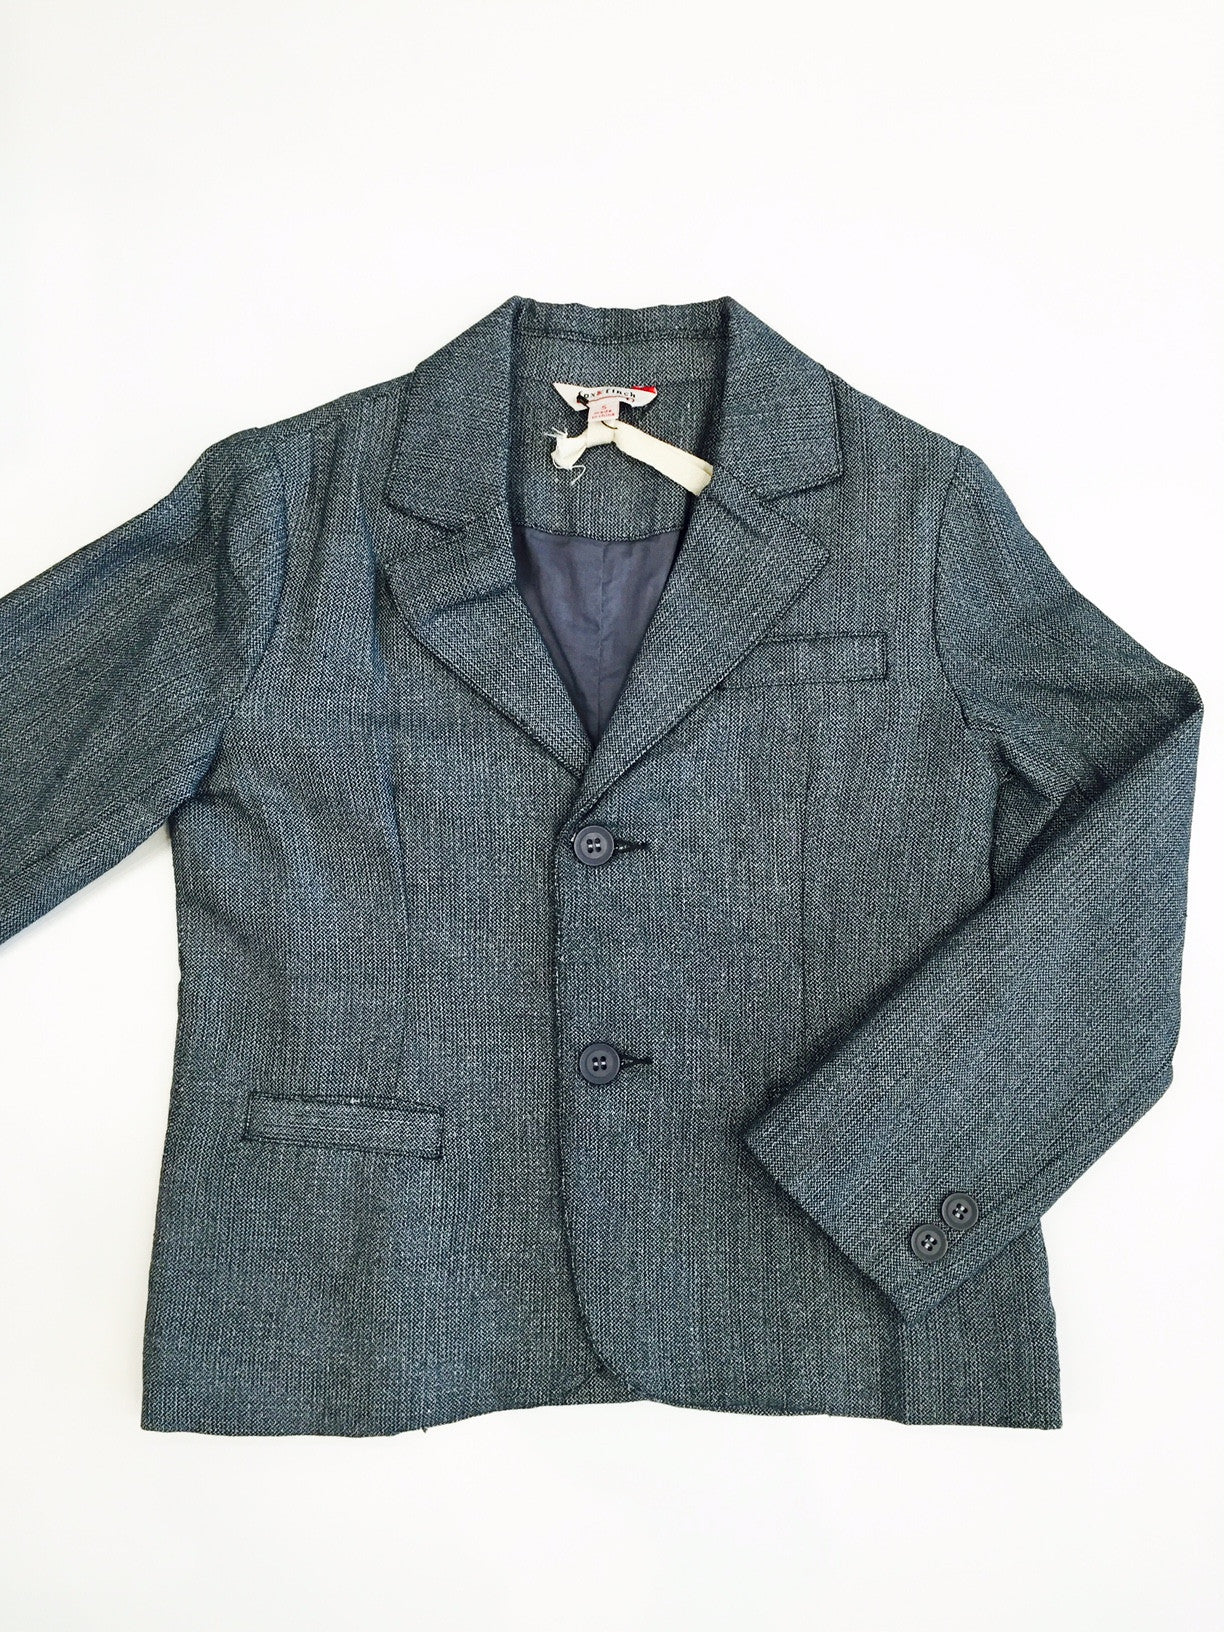 Fox and Finch Boys Charcoal Blazer